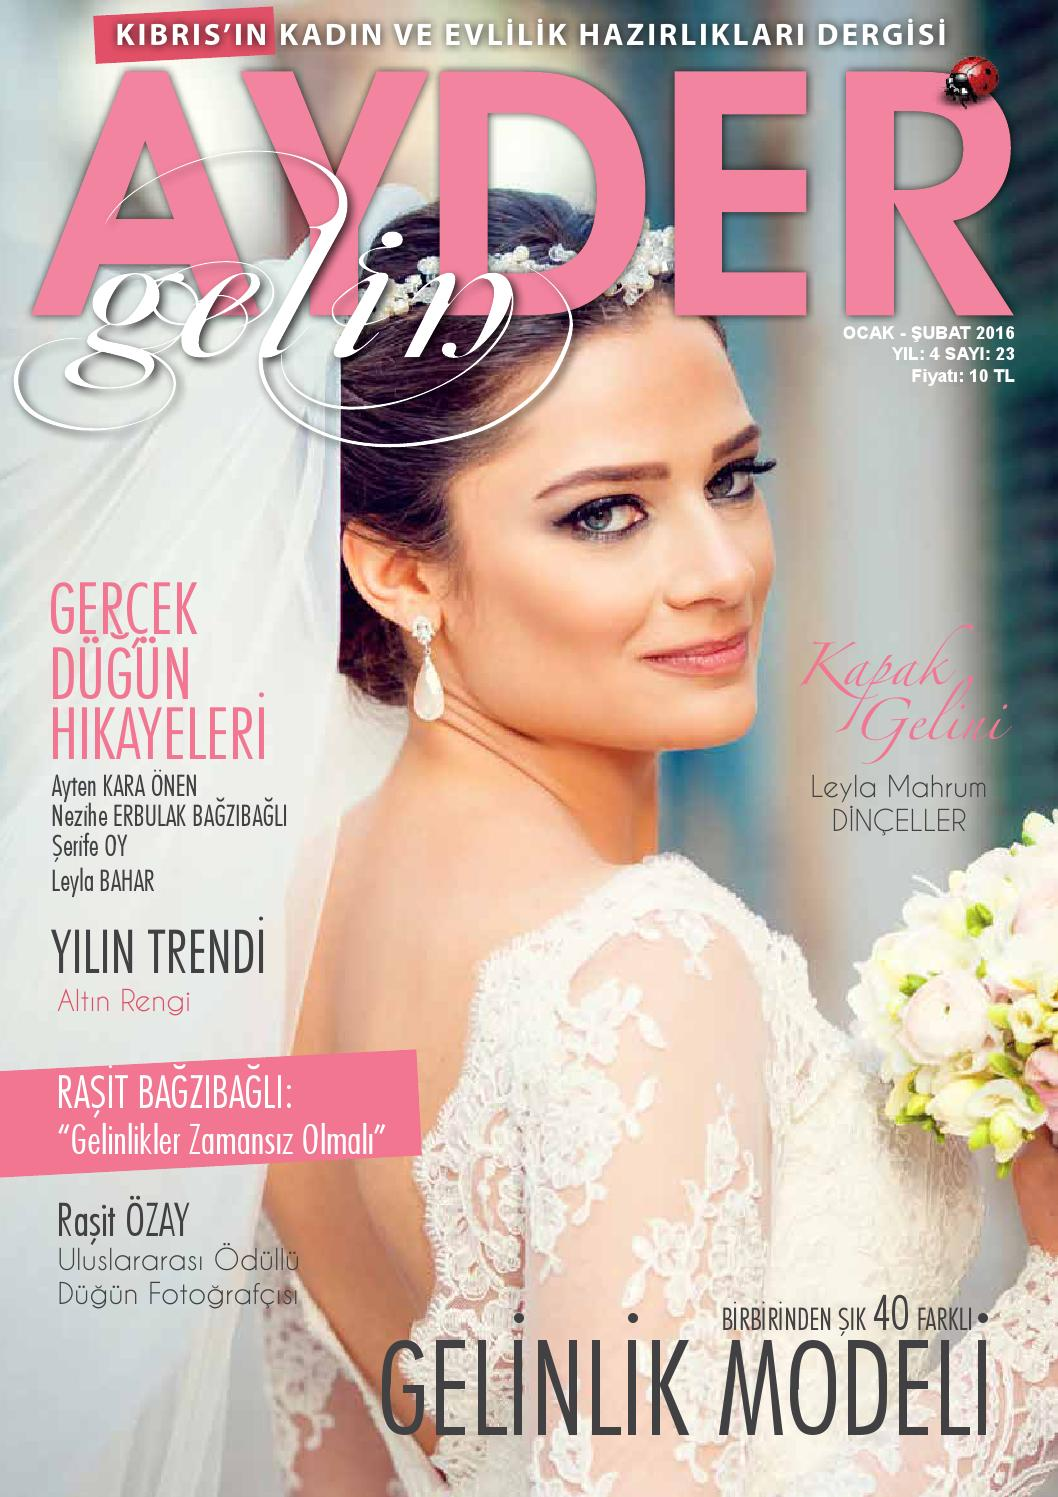 4105f56fb9891 Ayder Gelin Sayı 23 - N.Cyprus Wedding Magazine by ACM I Abrakadabra  Communication Management - issuu